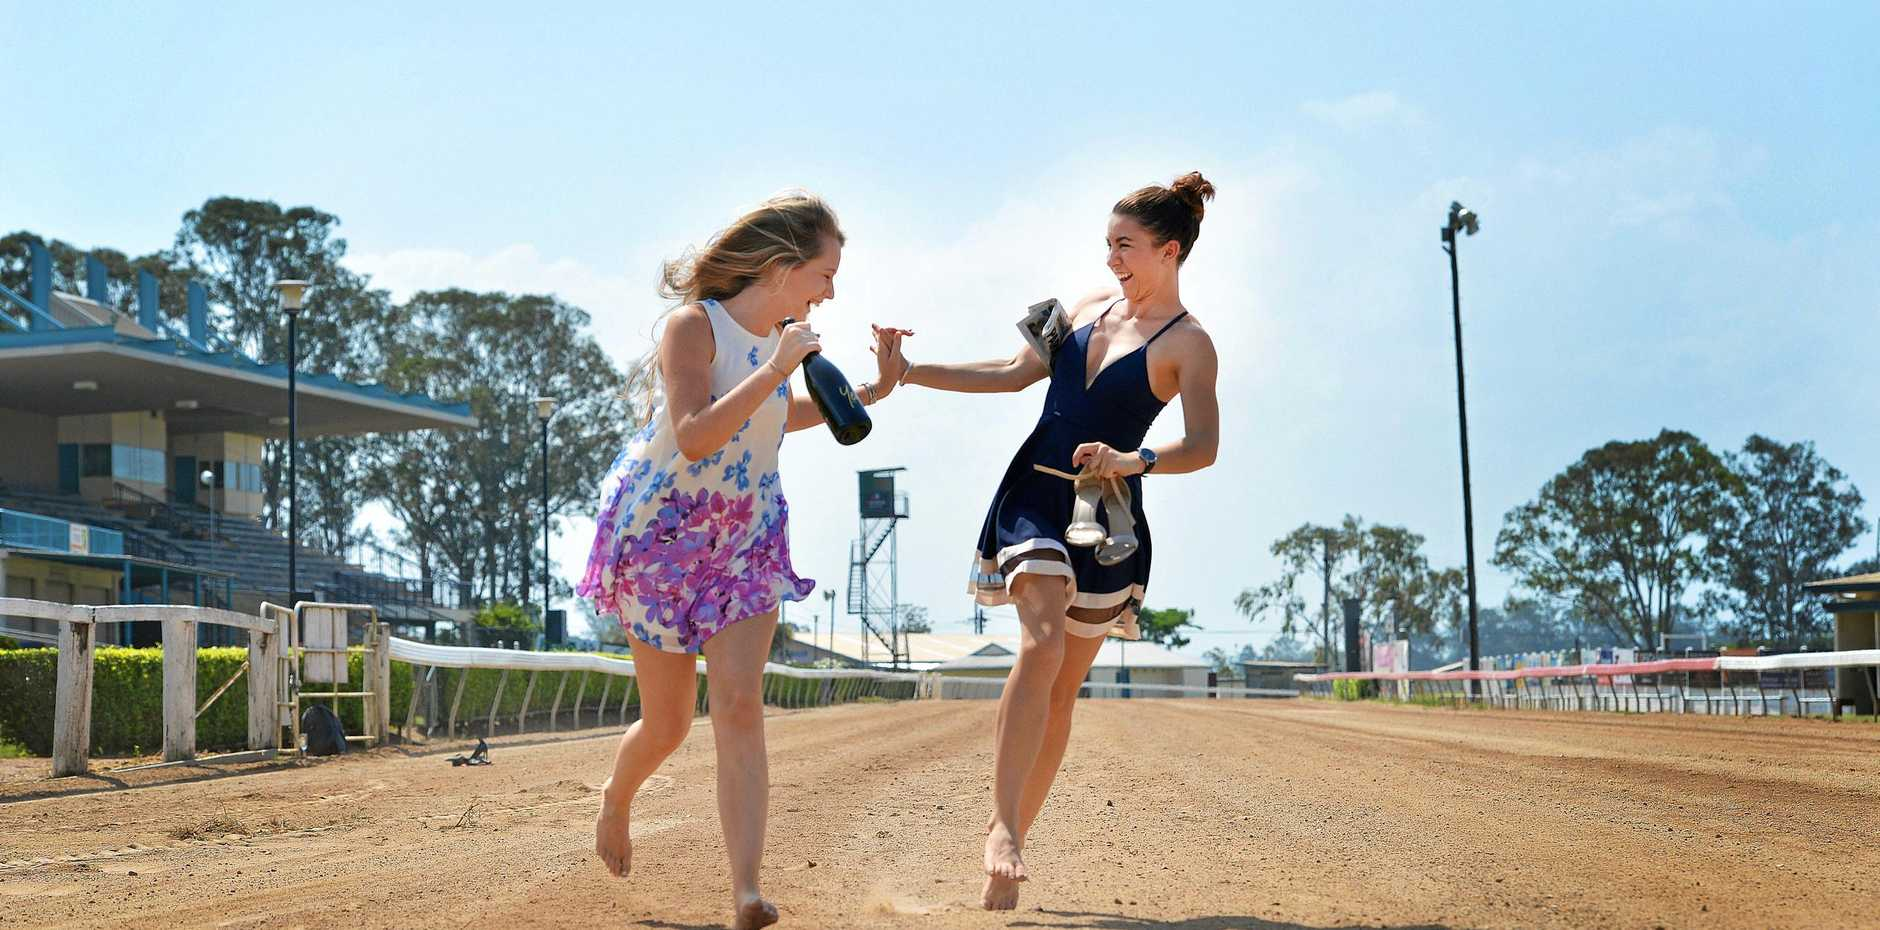 Get ready for a day of fun at the races this weekend